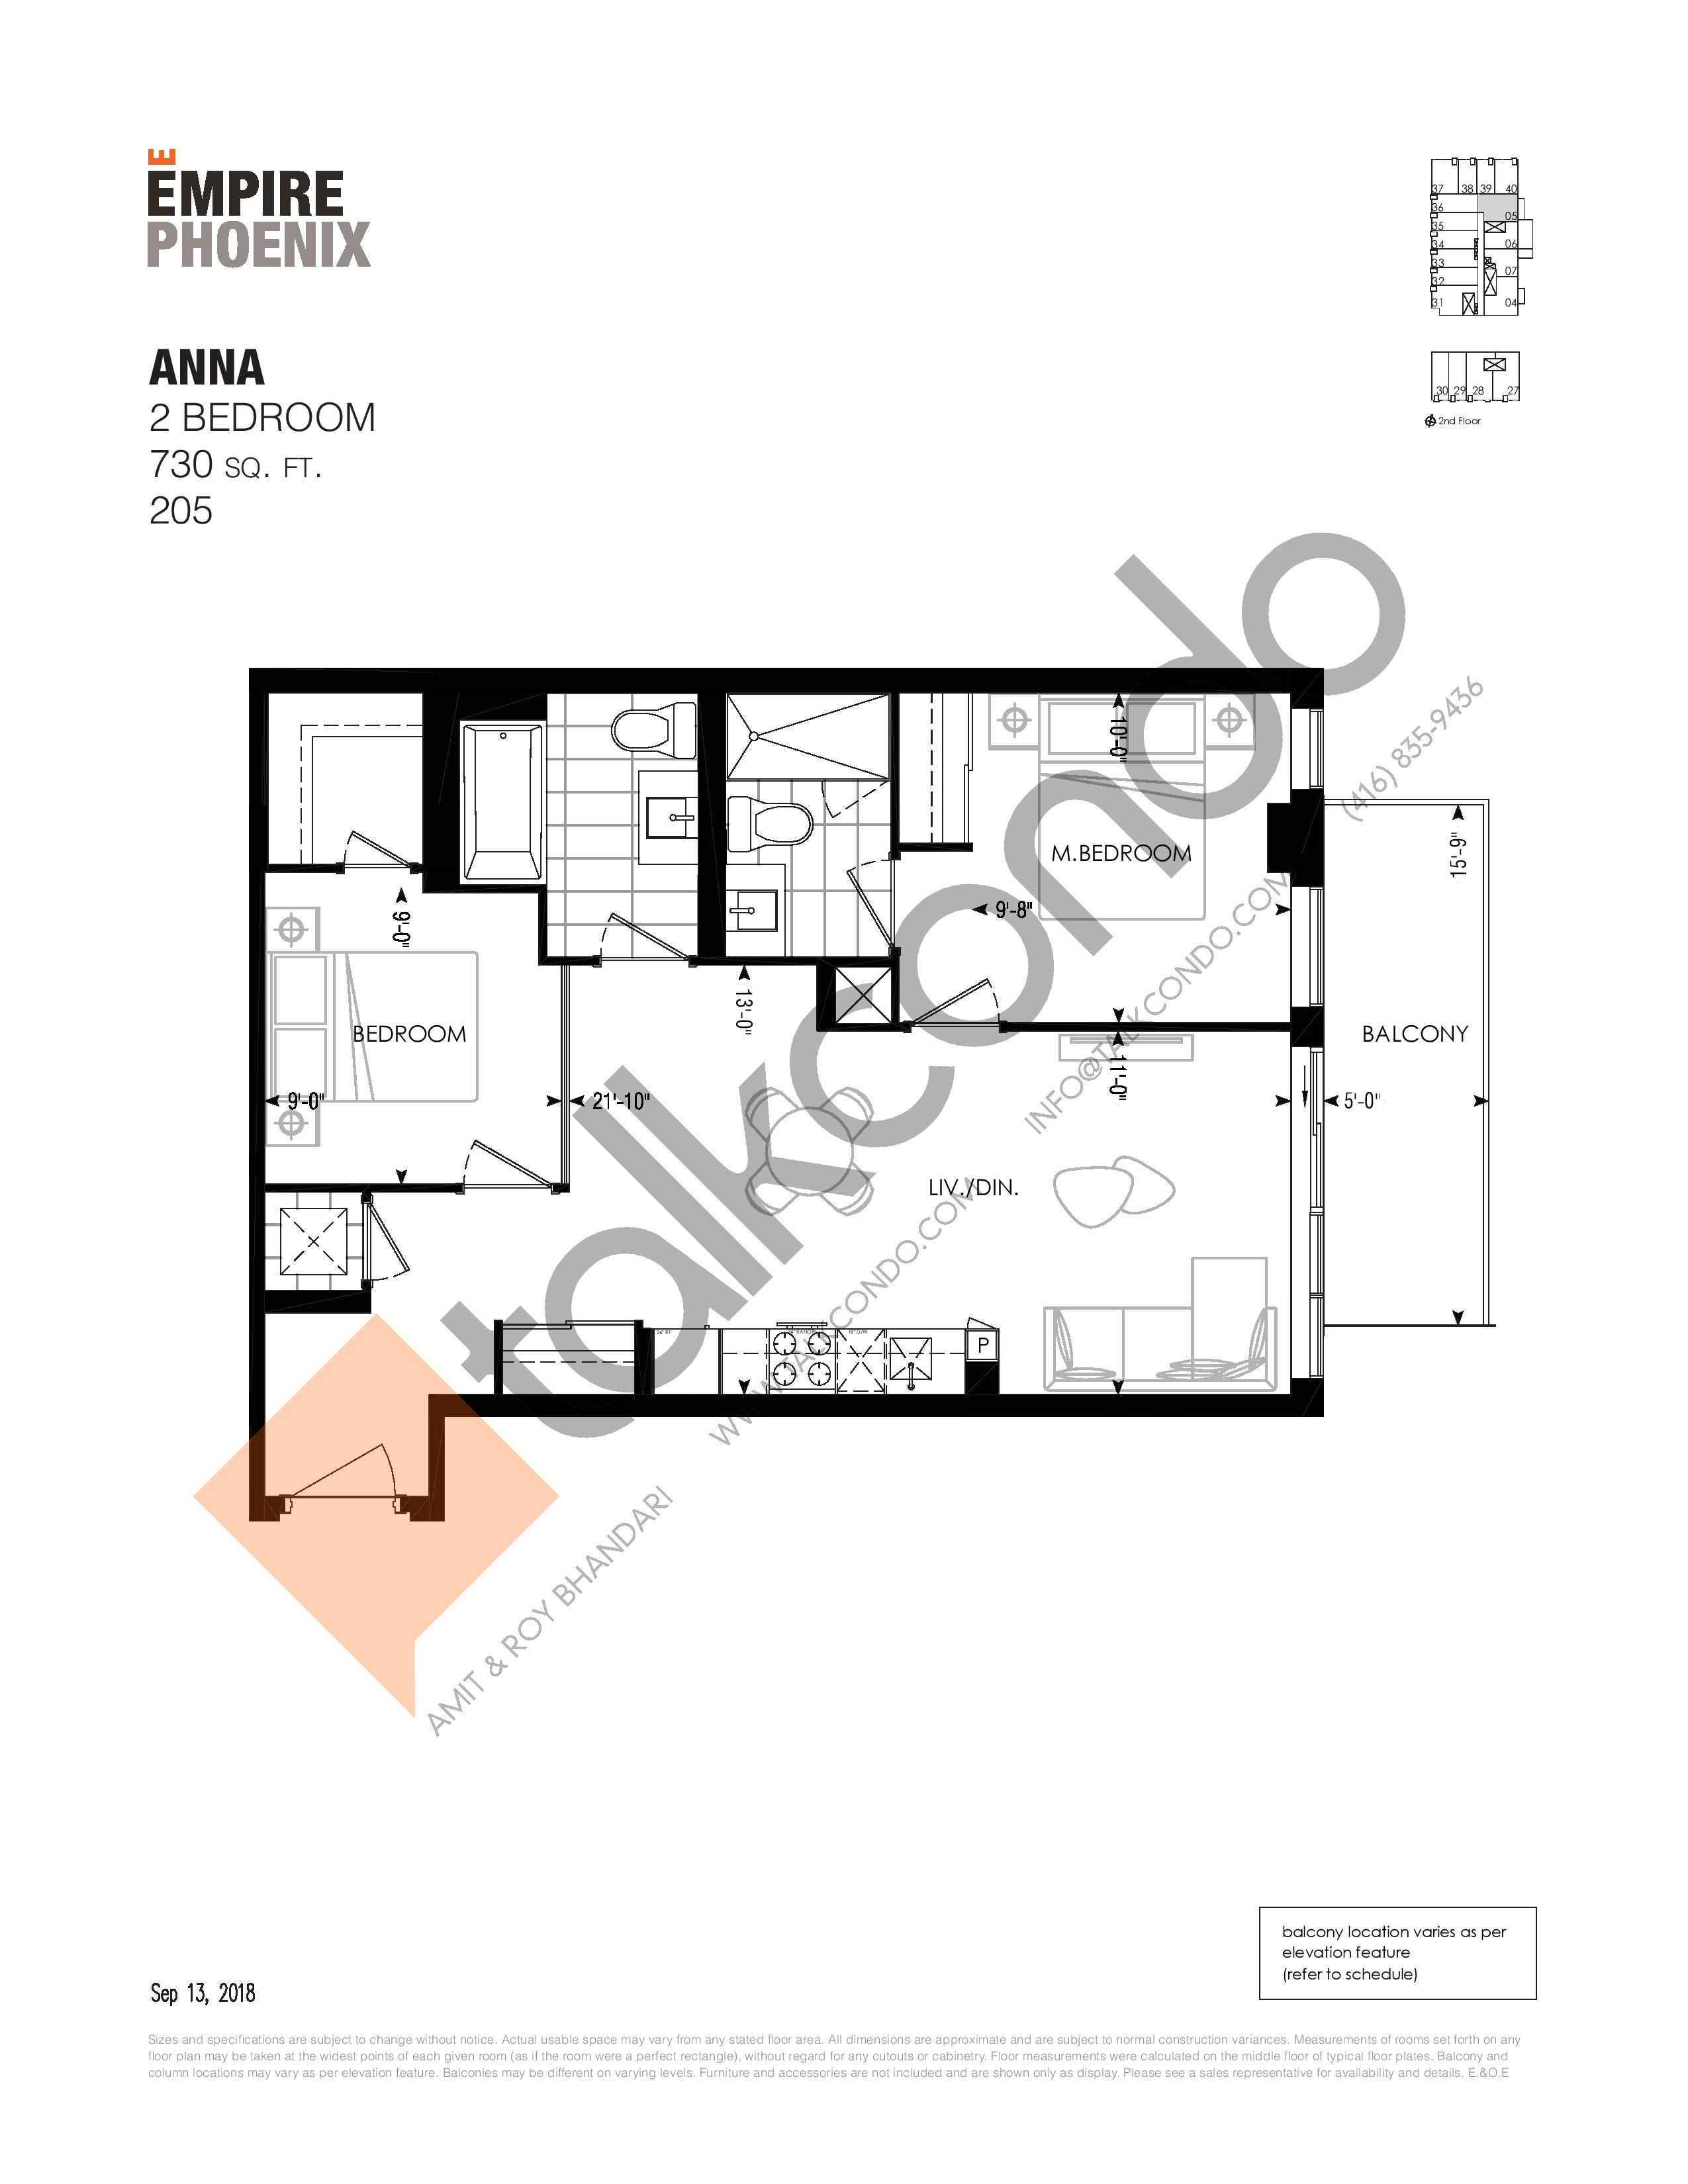 Anna Floor Plan at Empire Phoenix Phase 2 Condos - 730 sq.ft